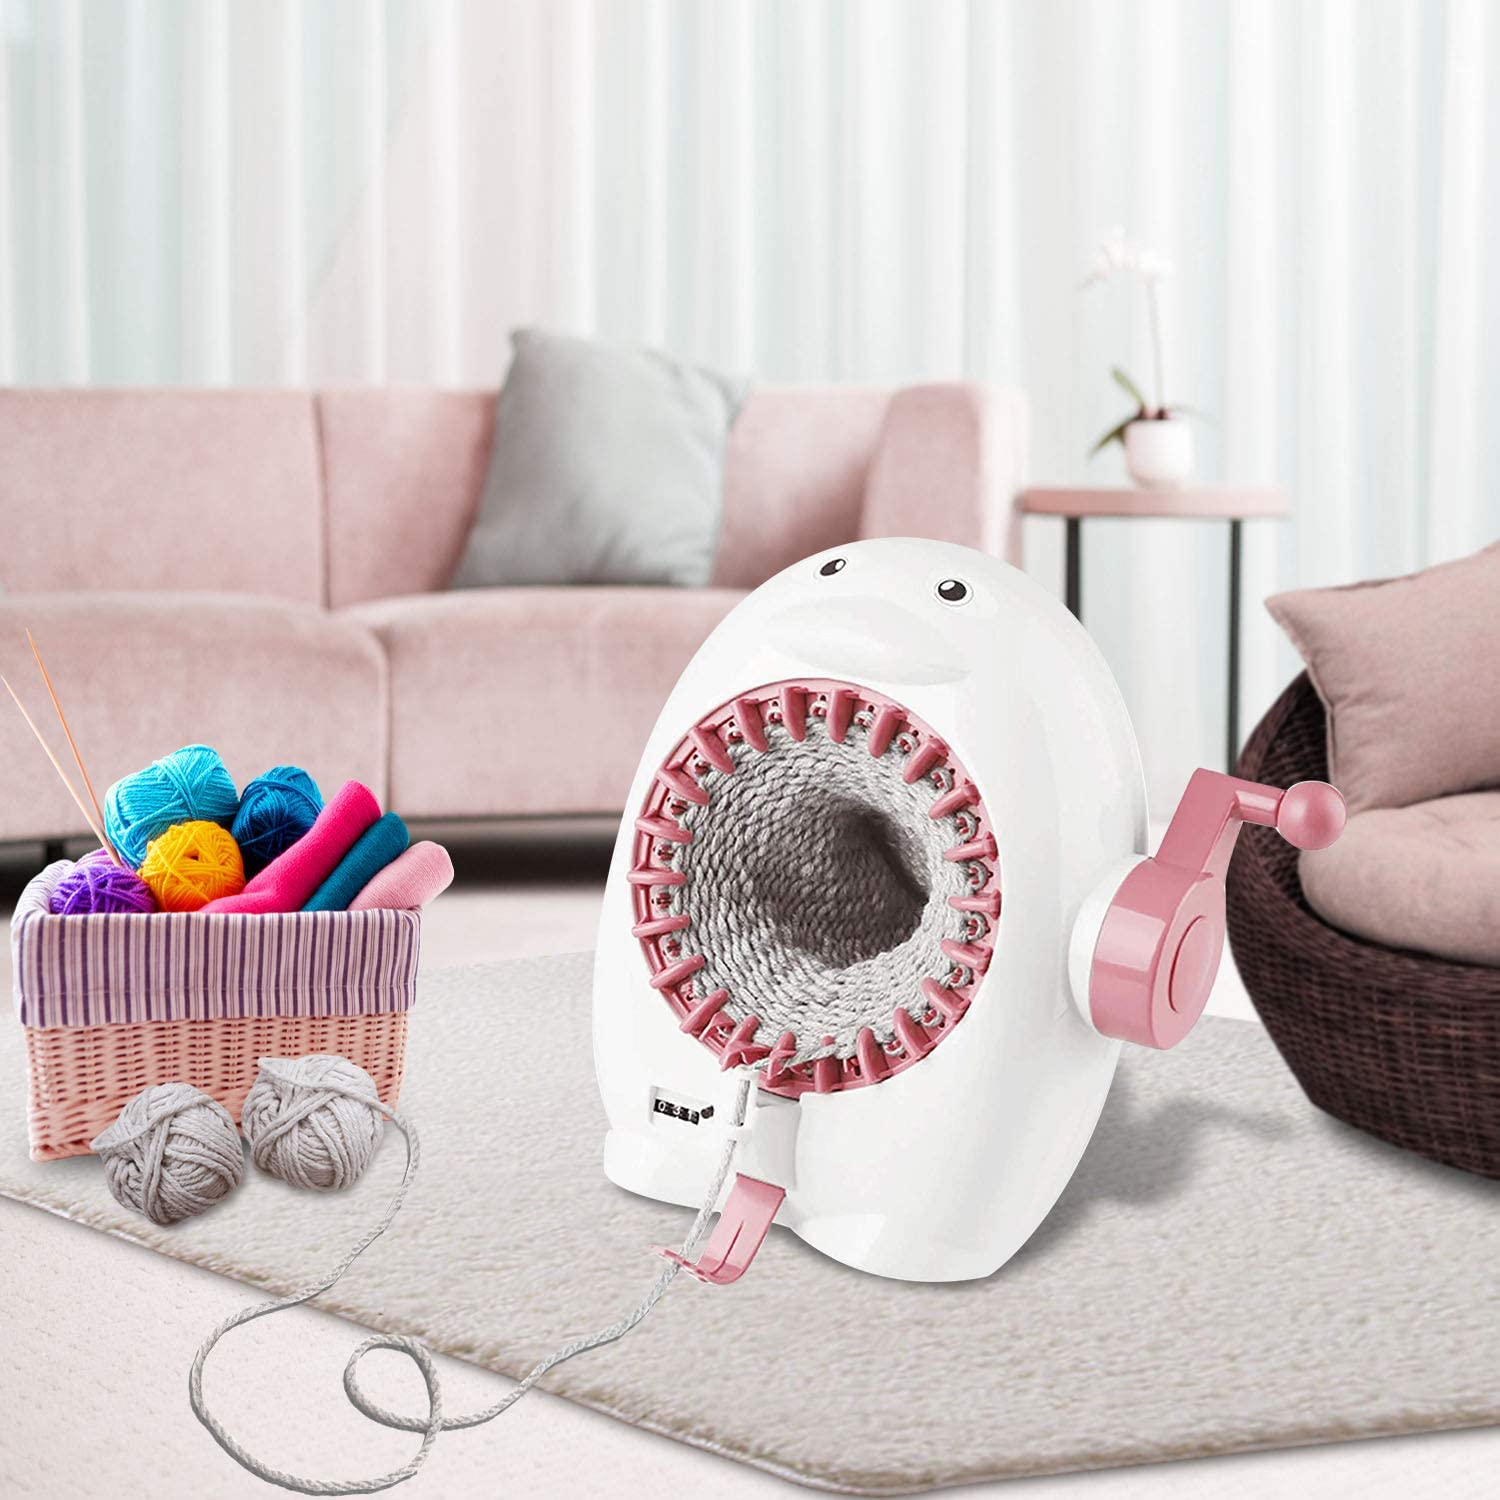 22 Needles Knitting Loom Machine with Row Counter Knitting Board Rotating Double Knit Loom Machine Kits Smart Knitting Loom Round Loom for Adults//Kids FYGAIN Knitting Machine